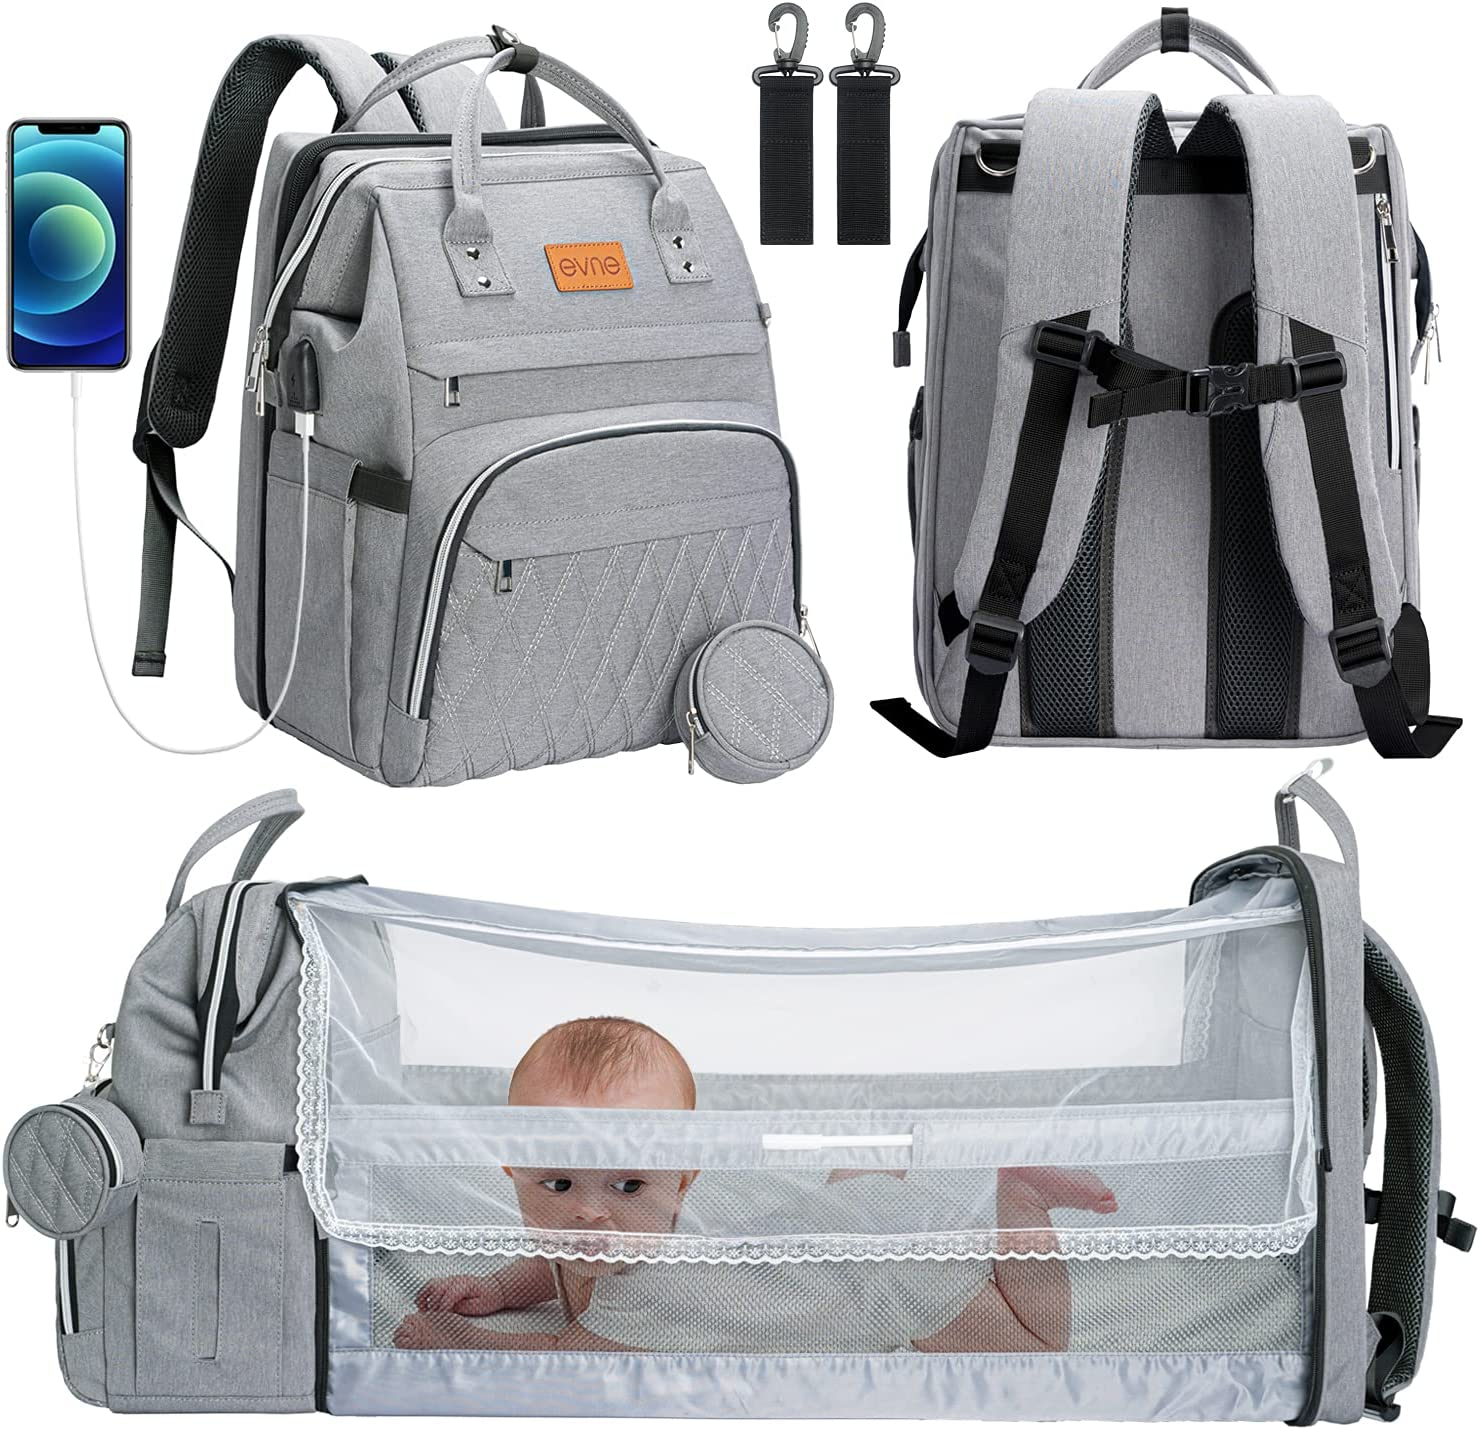 6 in 1 Diaper Bag Backpack with Changing Station, Diaper Bags for Baby Boys Girls,Portable Foldable Travel Bassinet with Changing Mat and Bed Net, Nappy Bag with Crib, Large Capacity Wide Open,Grey